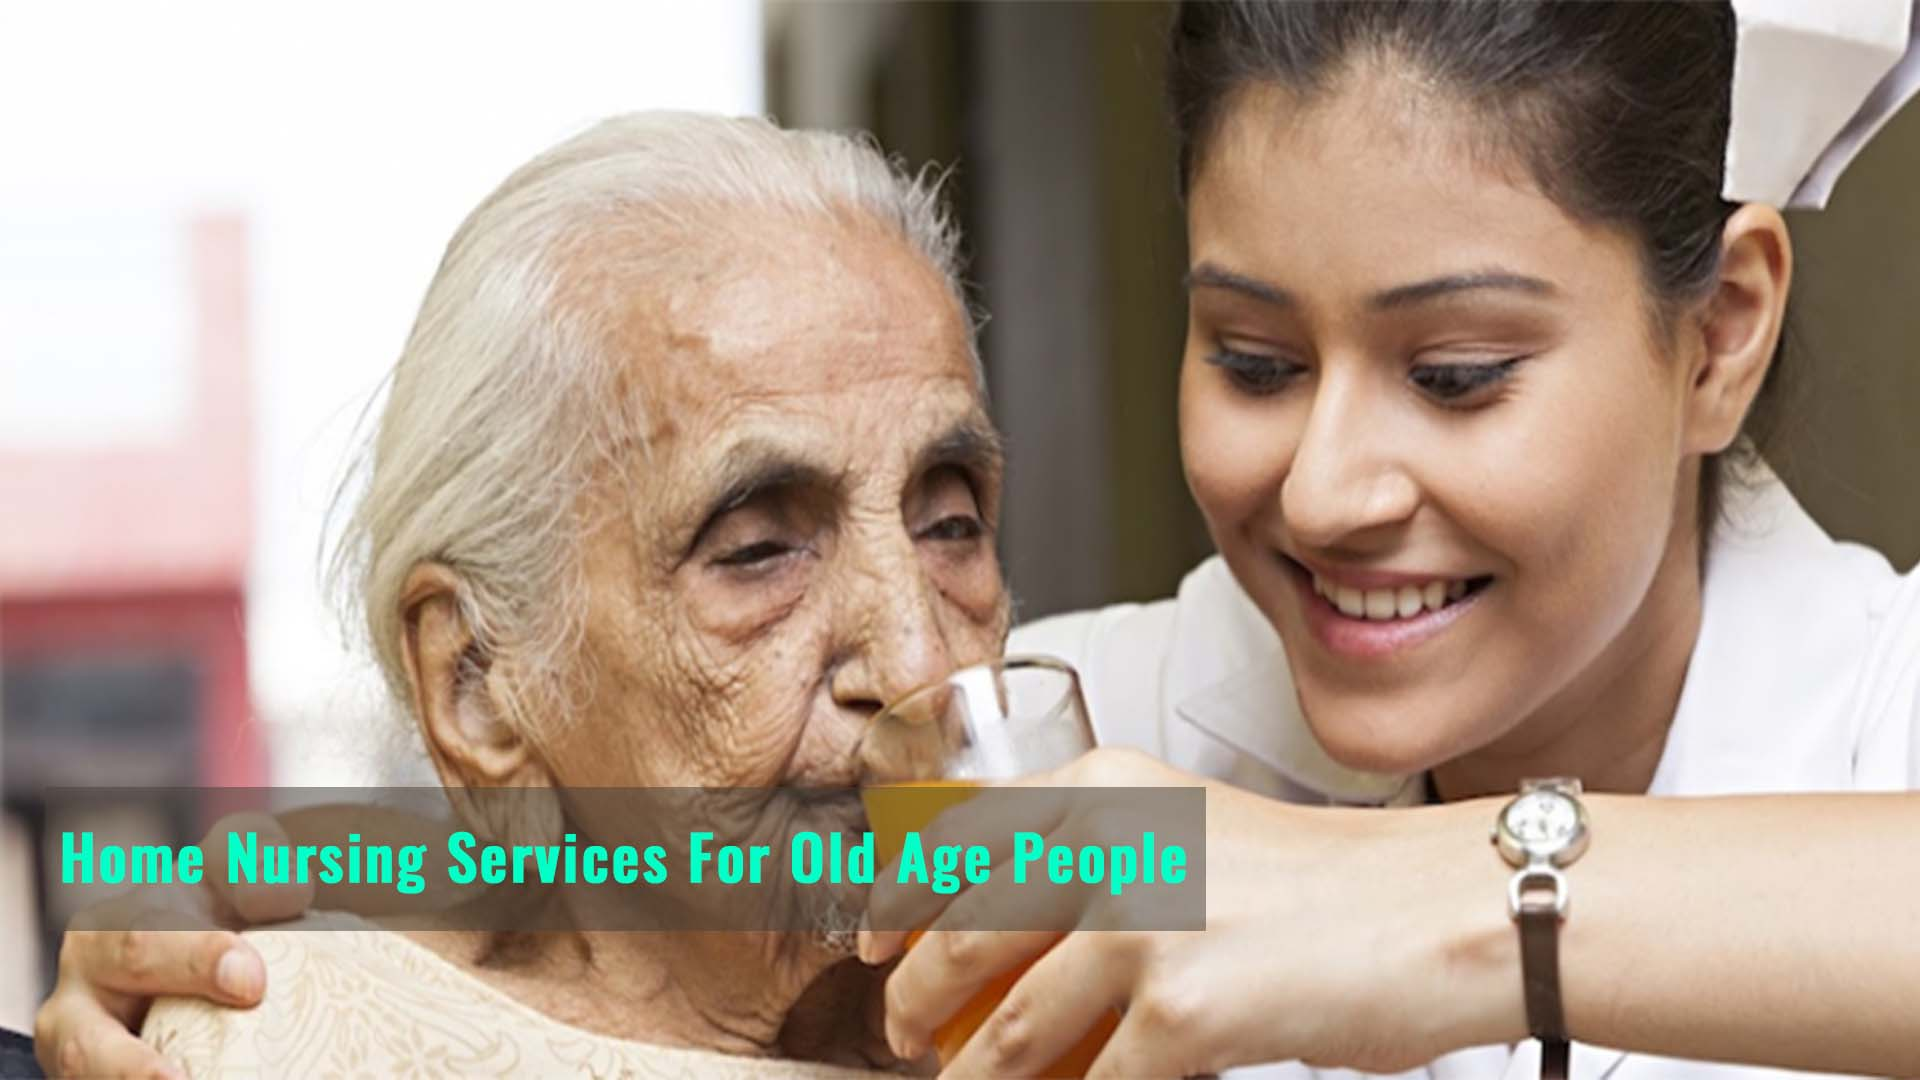 Home Nursing Services for Old Age People